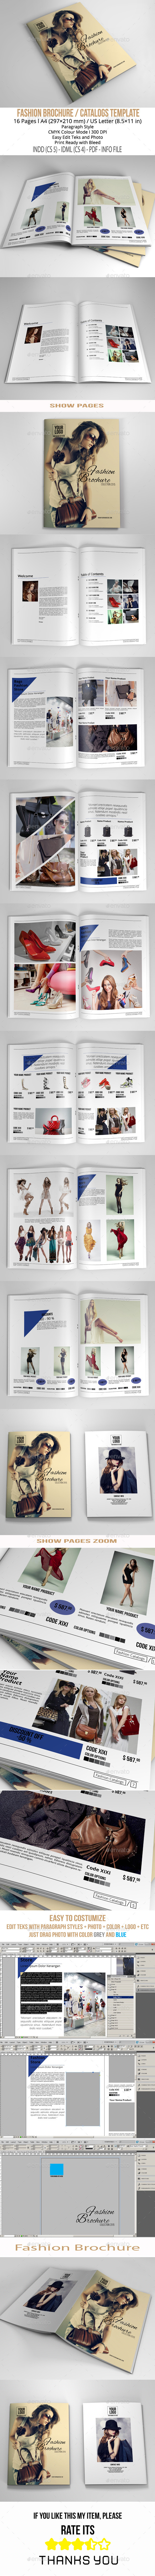 GraphicRiver Fashion Brochure A4 US Letter 11104898